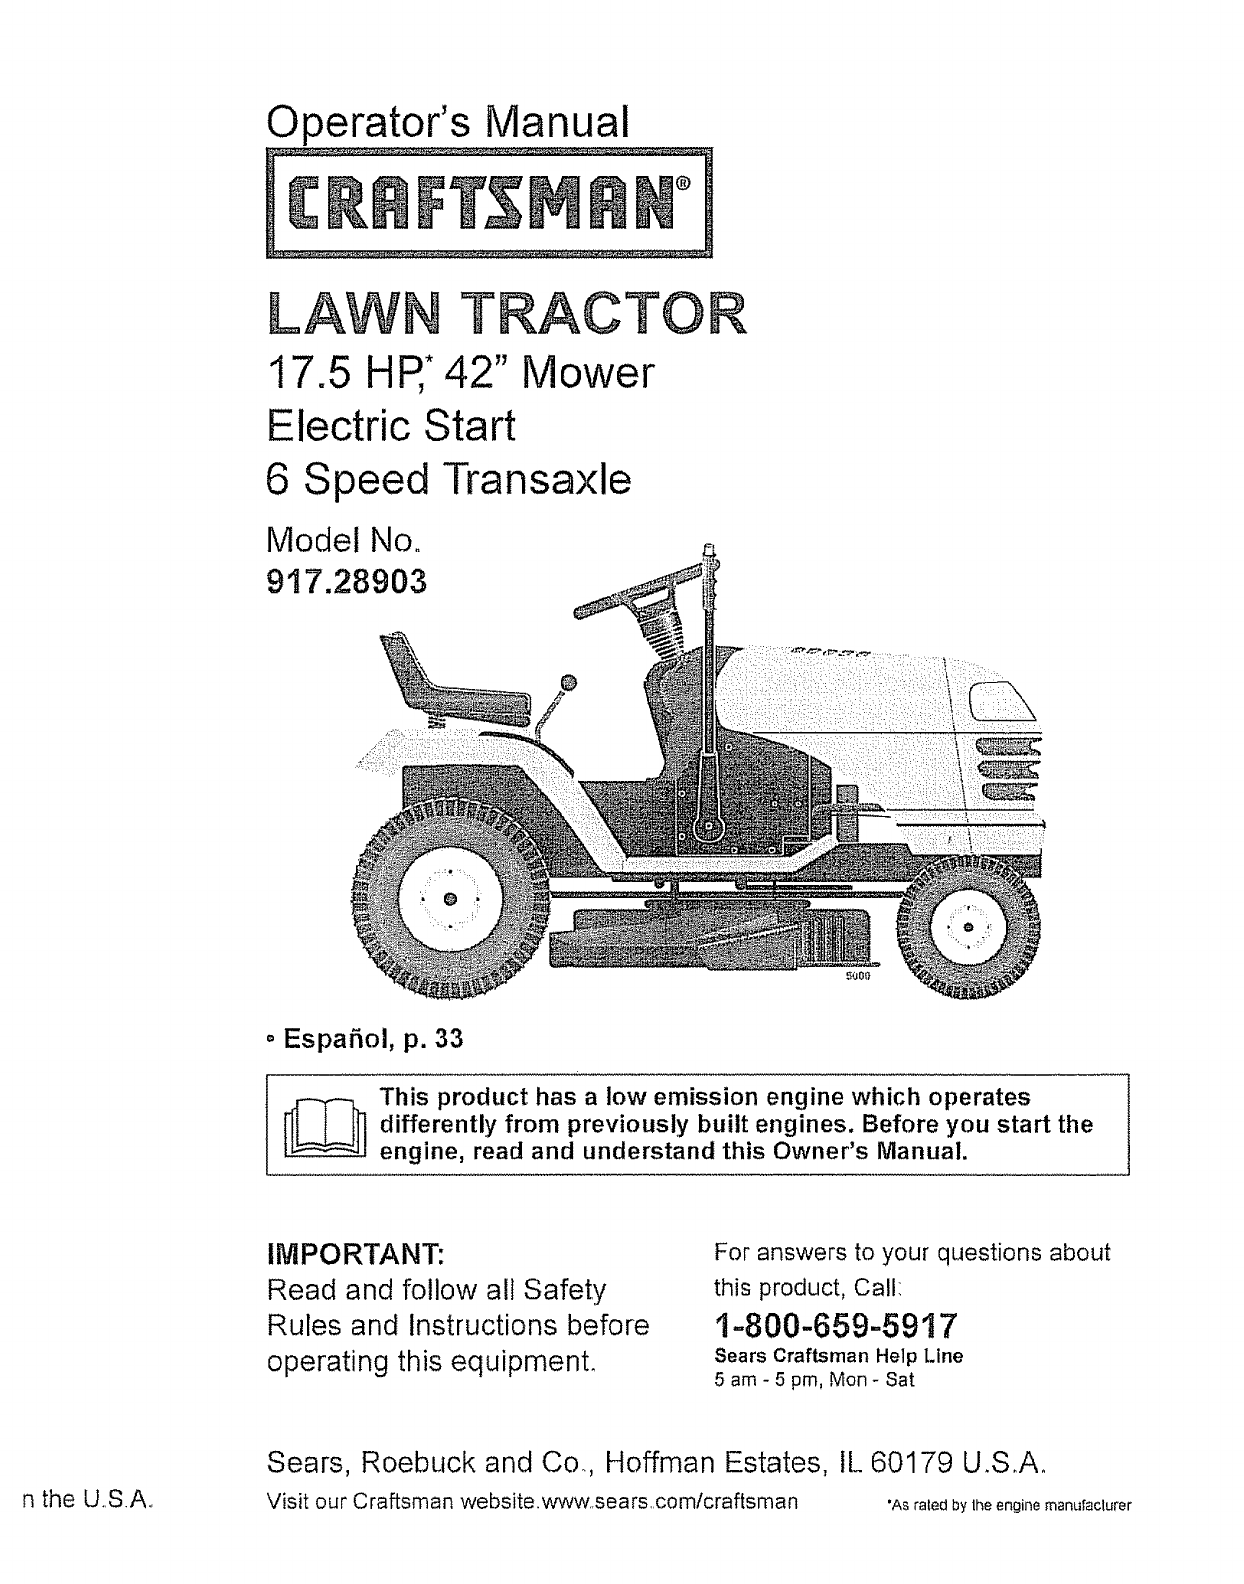 cb1648fd ba11 4ad4 80be 7014e24be2a7 bg1 craftsman riding lawn mower parts model 502254280 sears wiring diagram for craftsman lt1000 at readyjetset.co